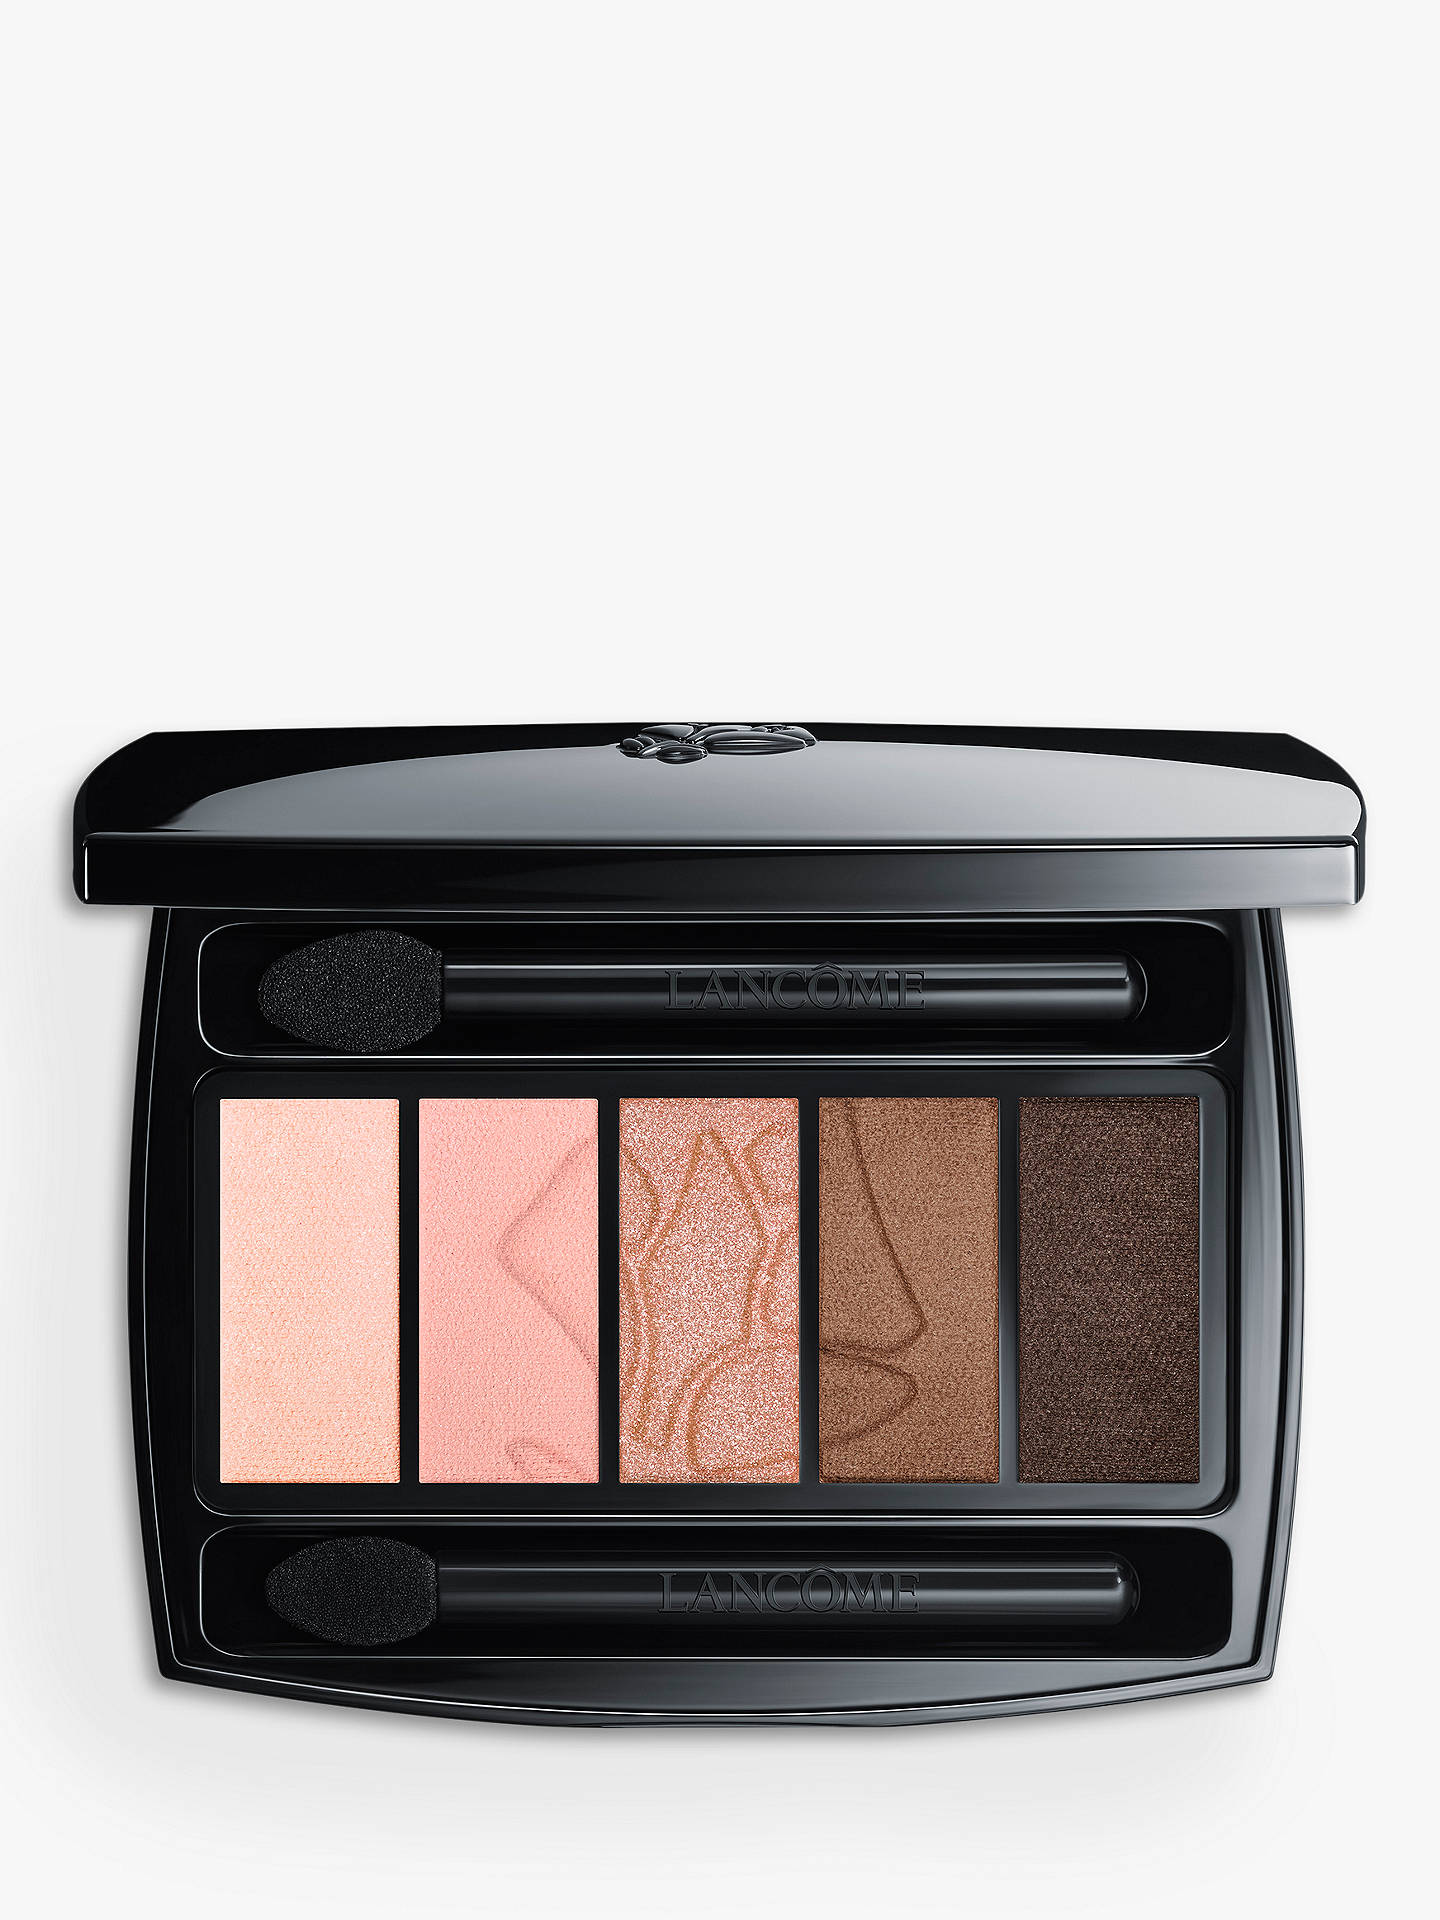 0e5d68dc1a3 Buy Lancôme Hypnôse Drama Eyeshadow Palette, 01 French Nude Online at  johnlewis.com ...